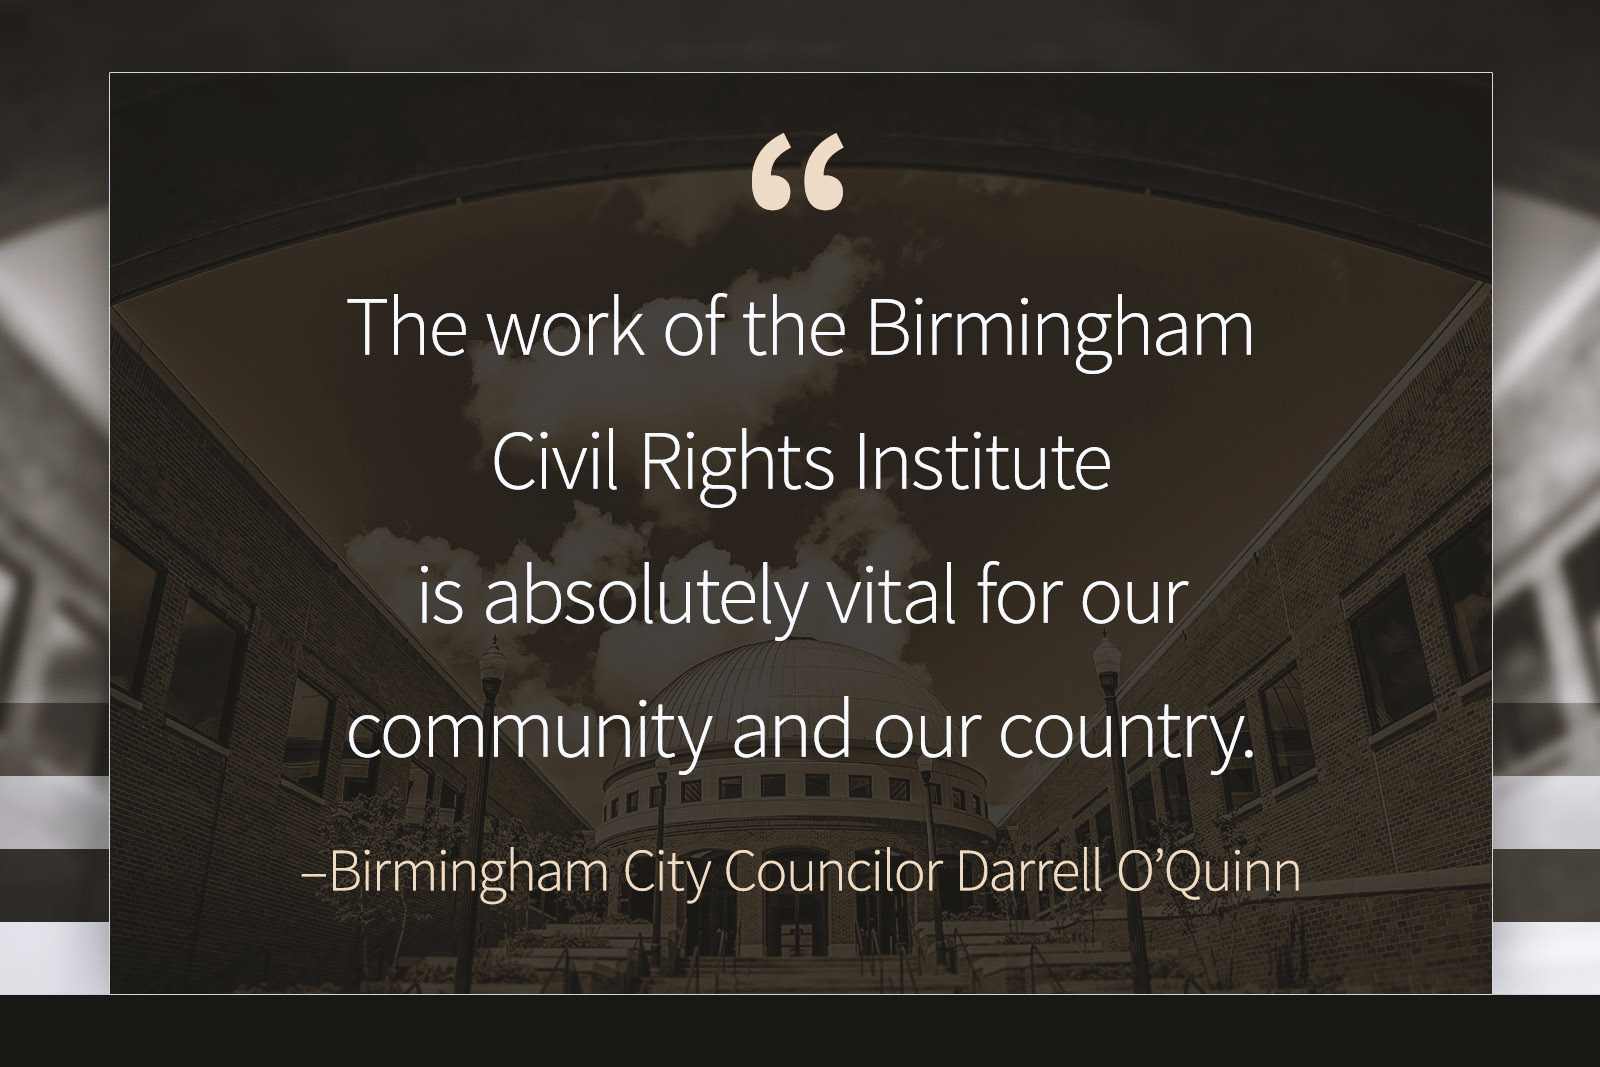 """As evidenced by recent events, the work of the Birmingham Civil Rights Institute is absolutely vital for our community and our country,"""" added City Councilor Darrell O'Quinn, whose district includes the BCRI."""